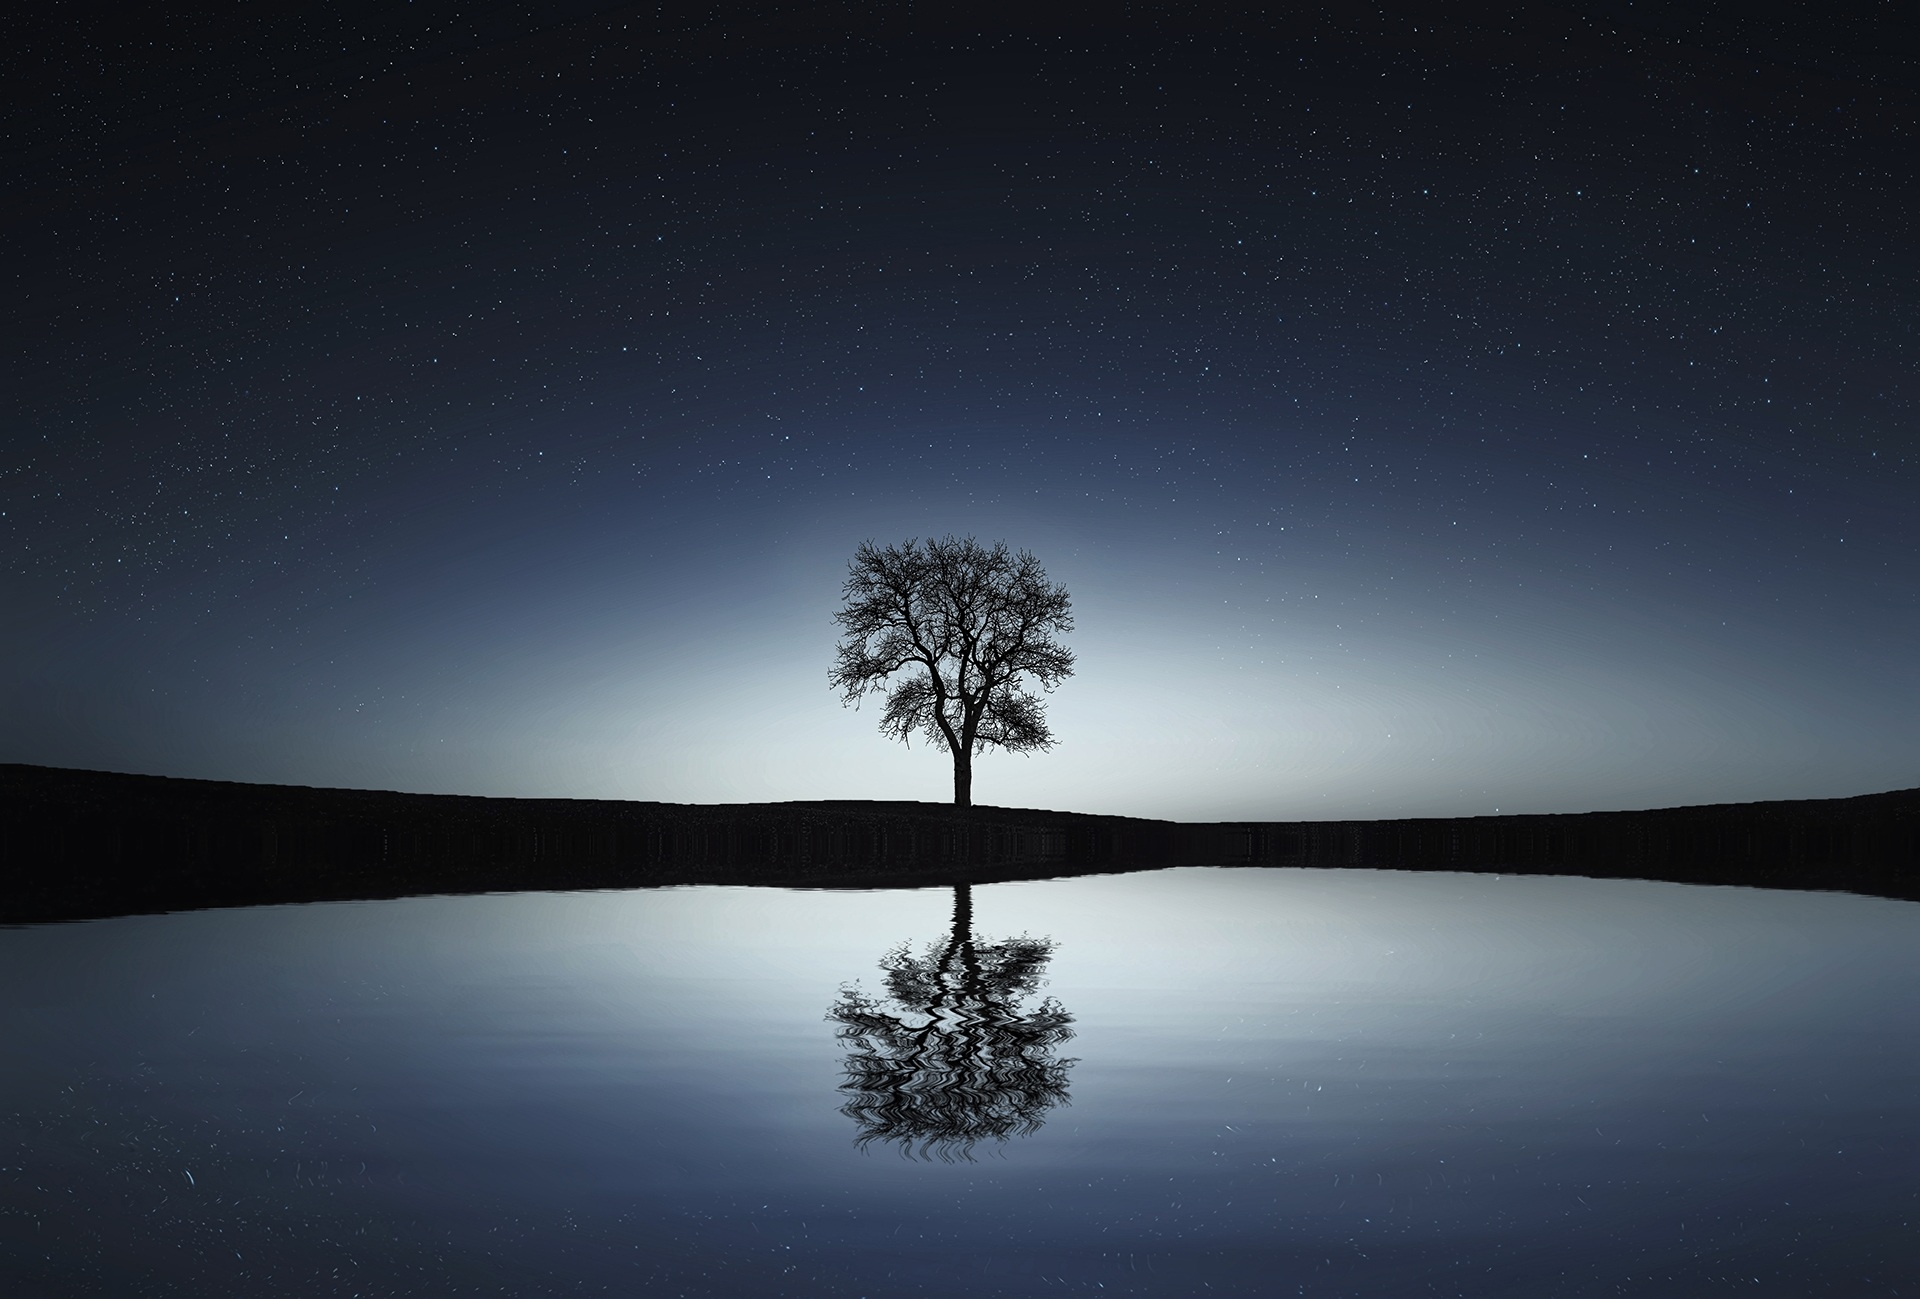 73178 download wallpaper Water, Nature, Night, Reflection, Wood, Tree screensavers and pictures for free